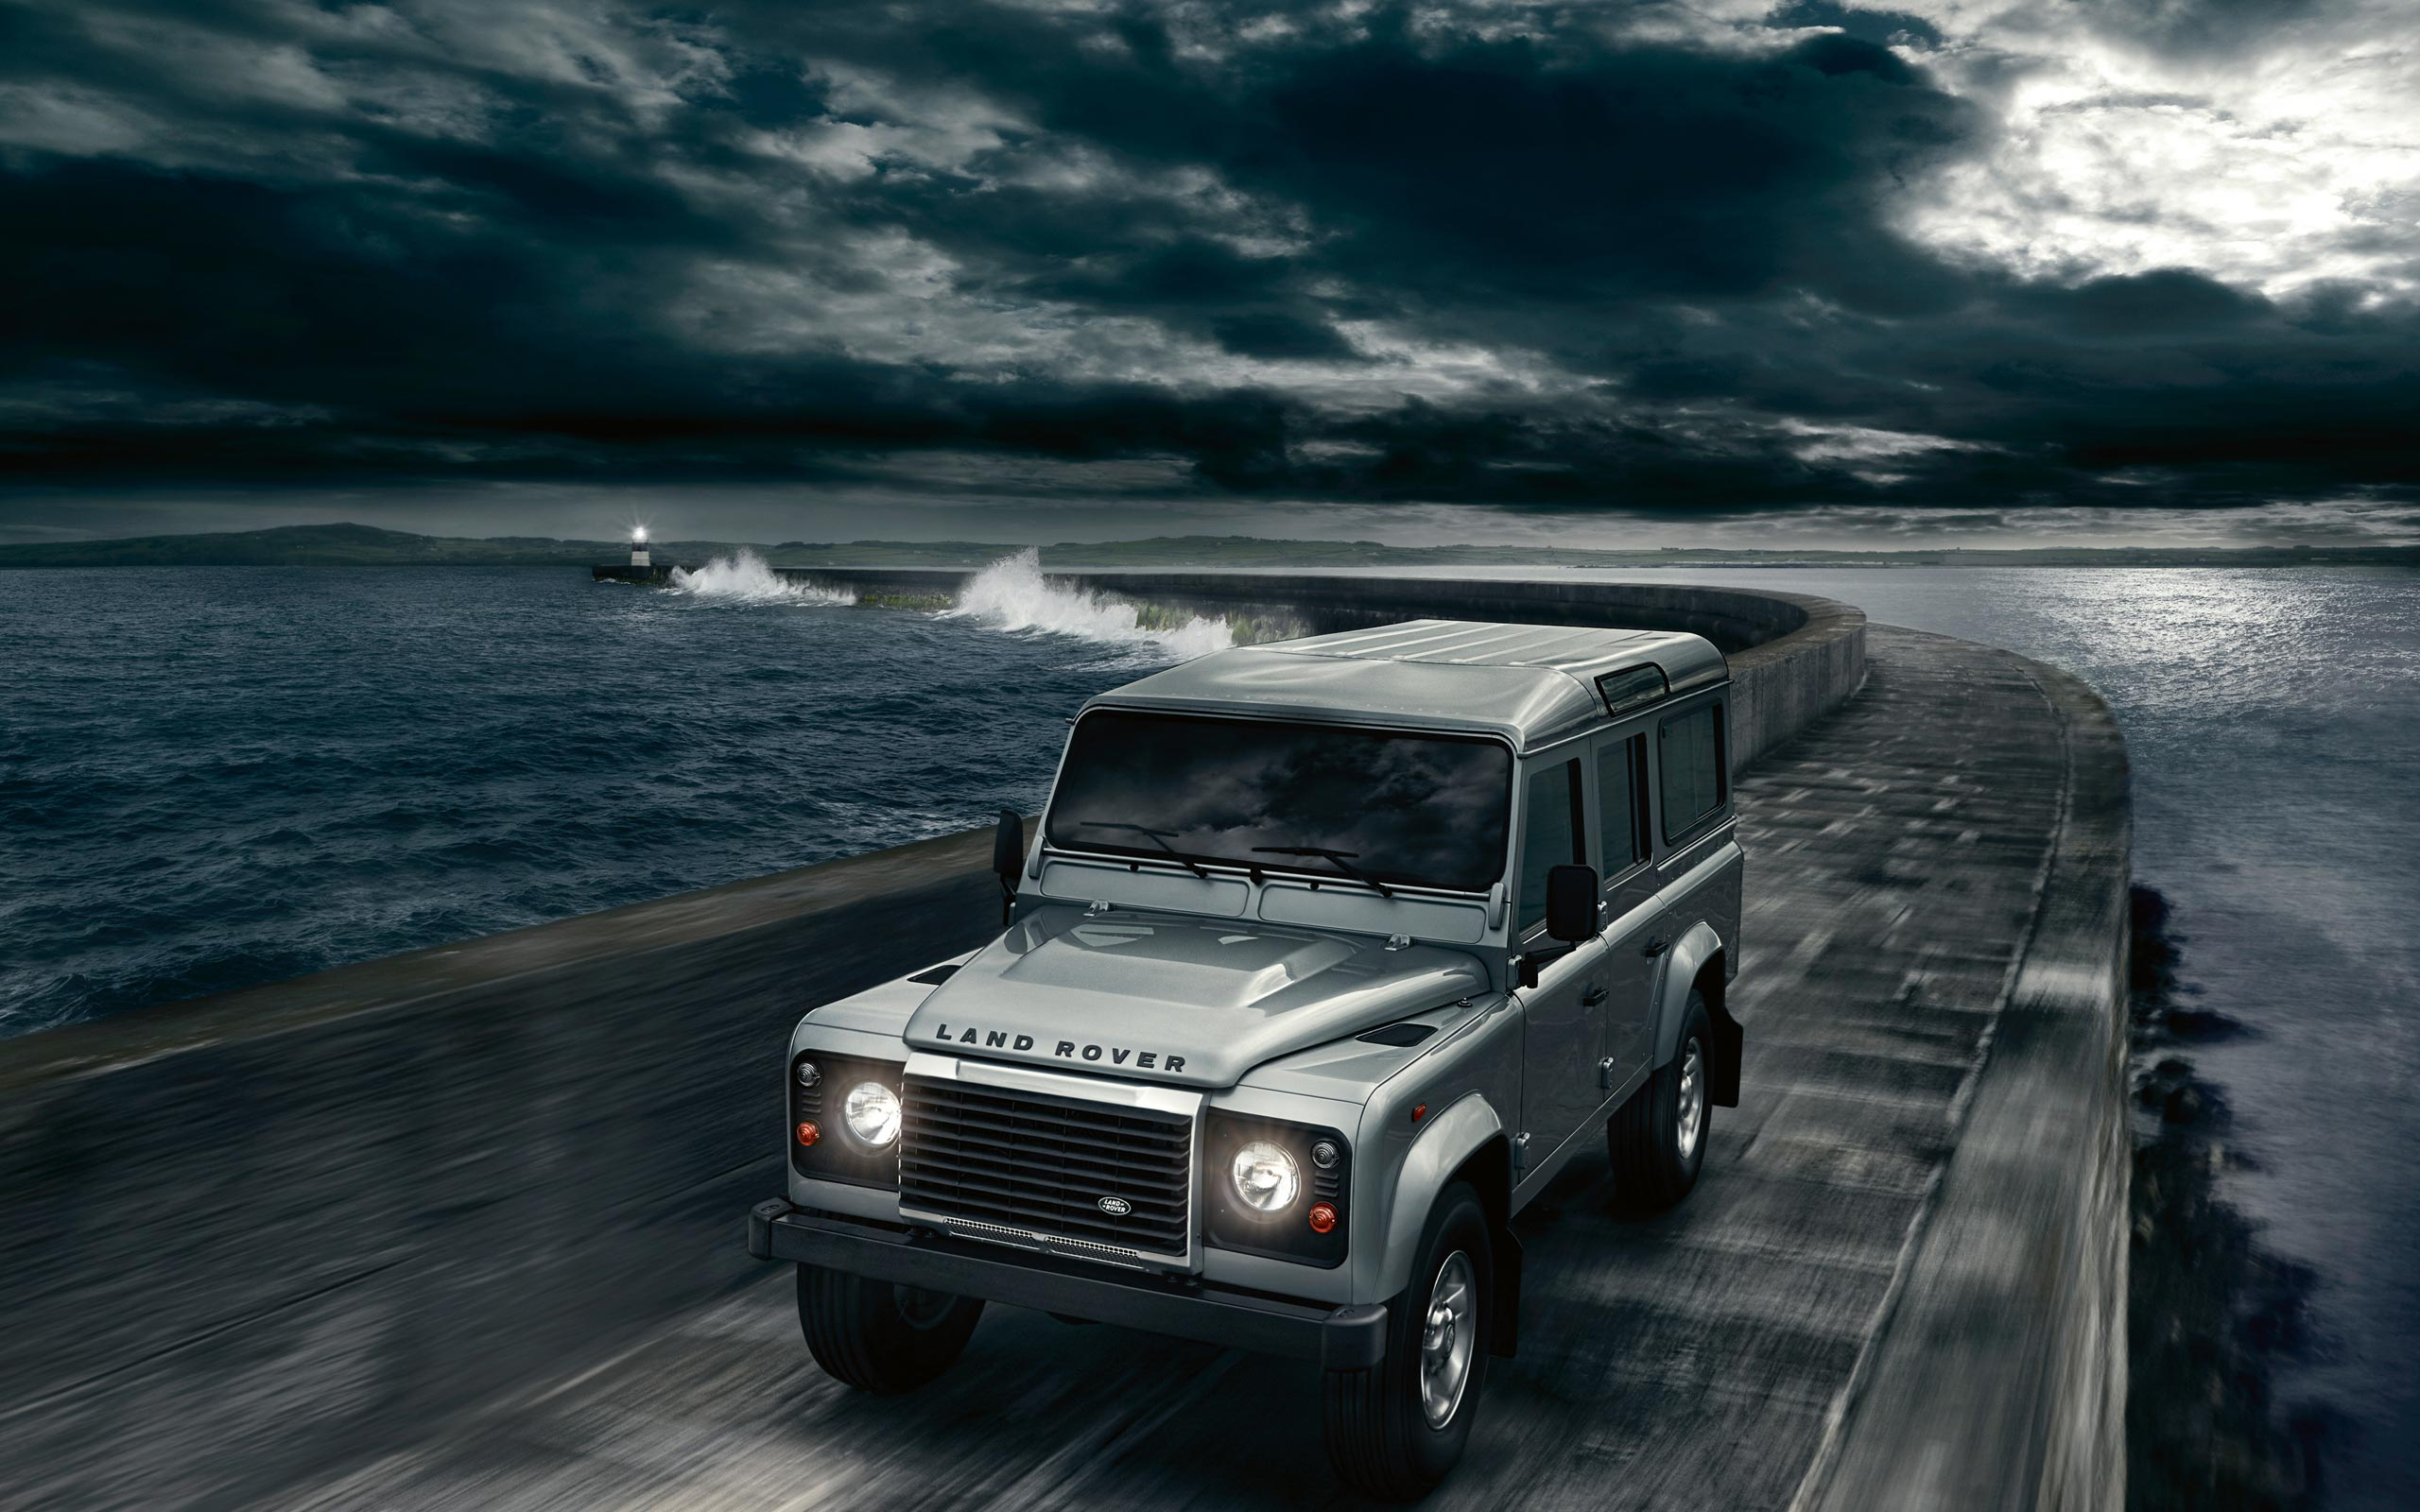 Land Rover Defender Wallpapers - WallpaperSafari